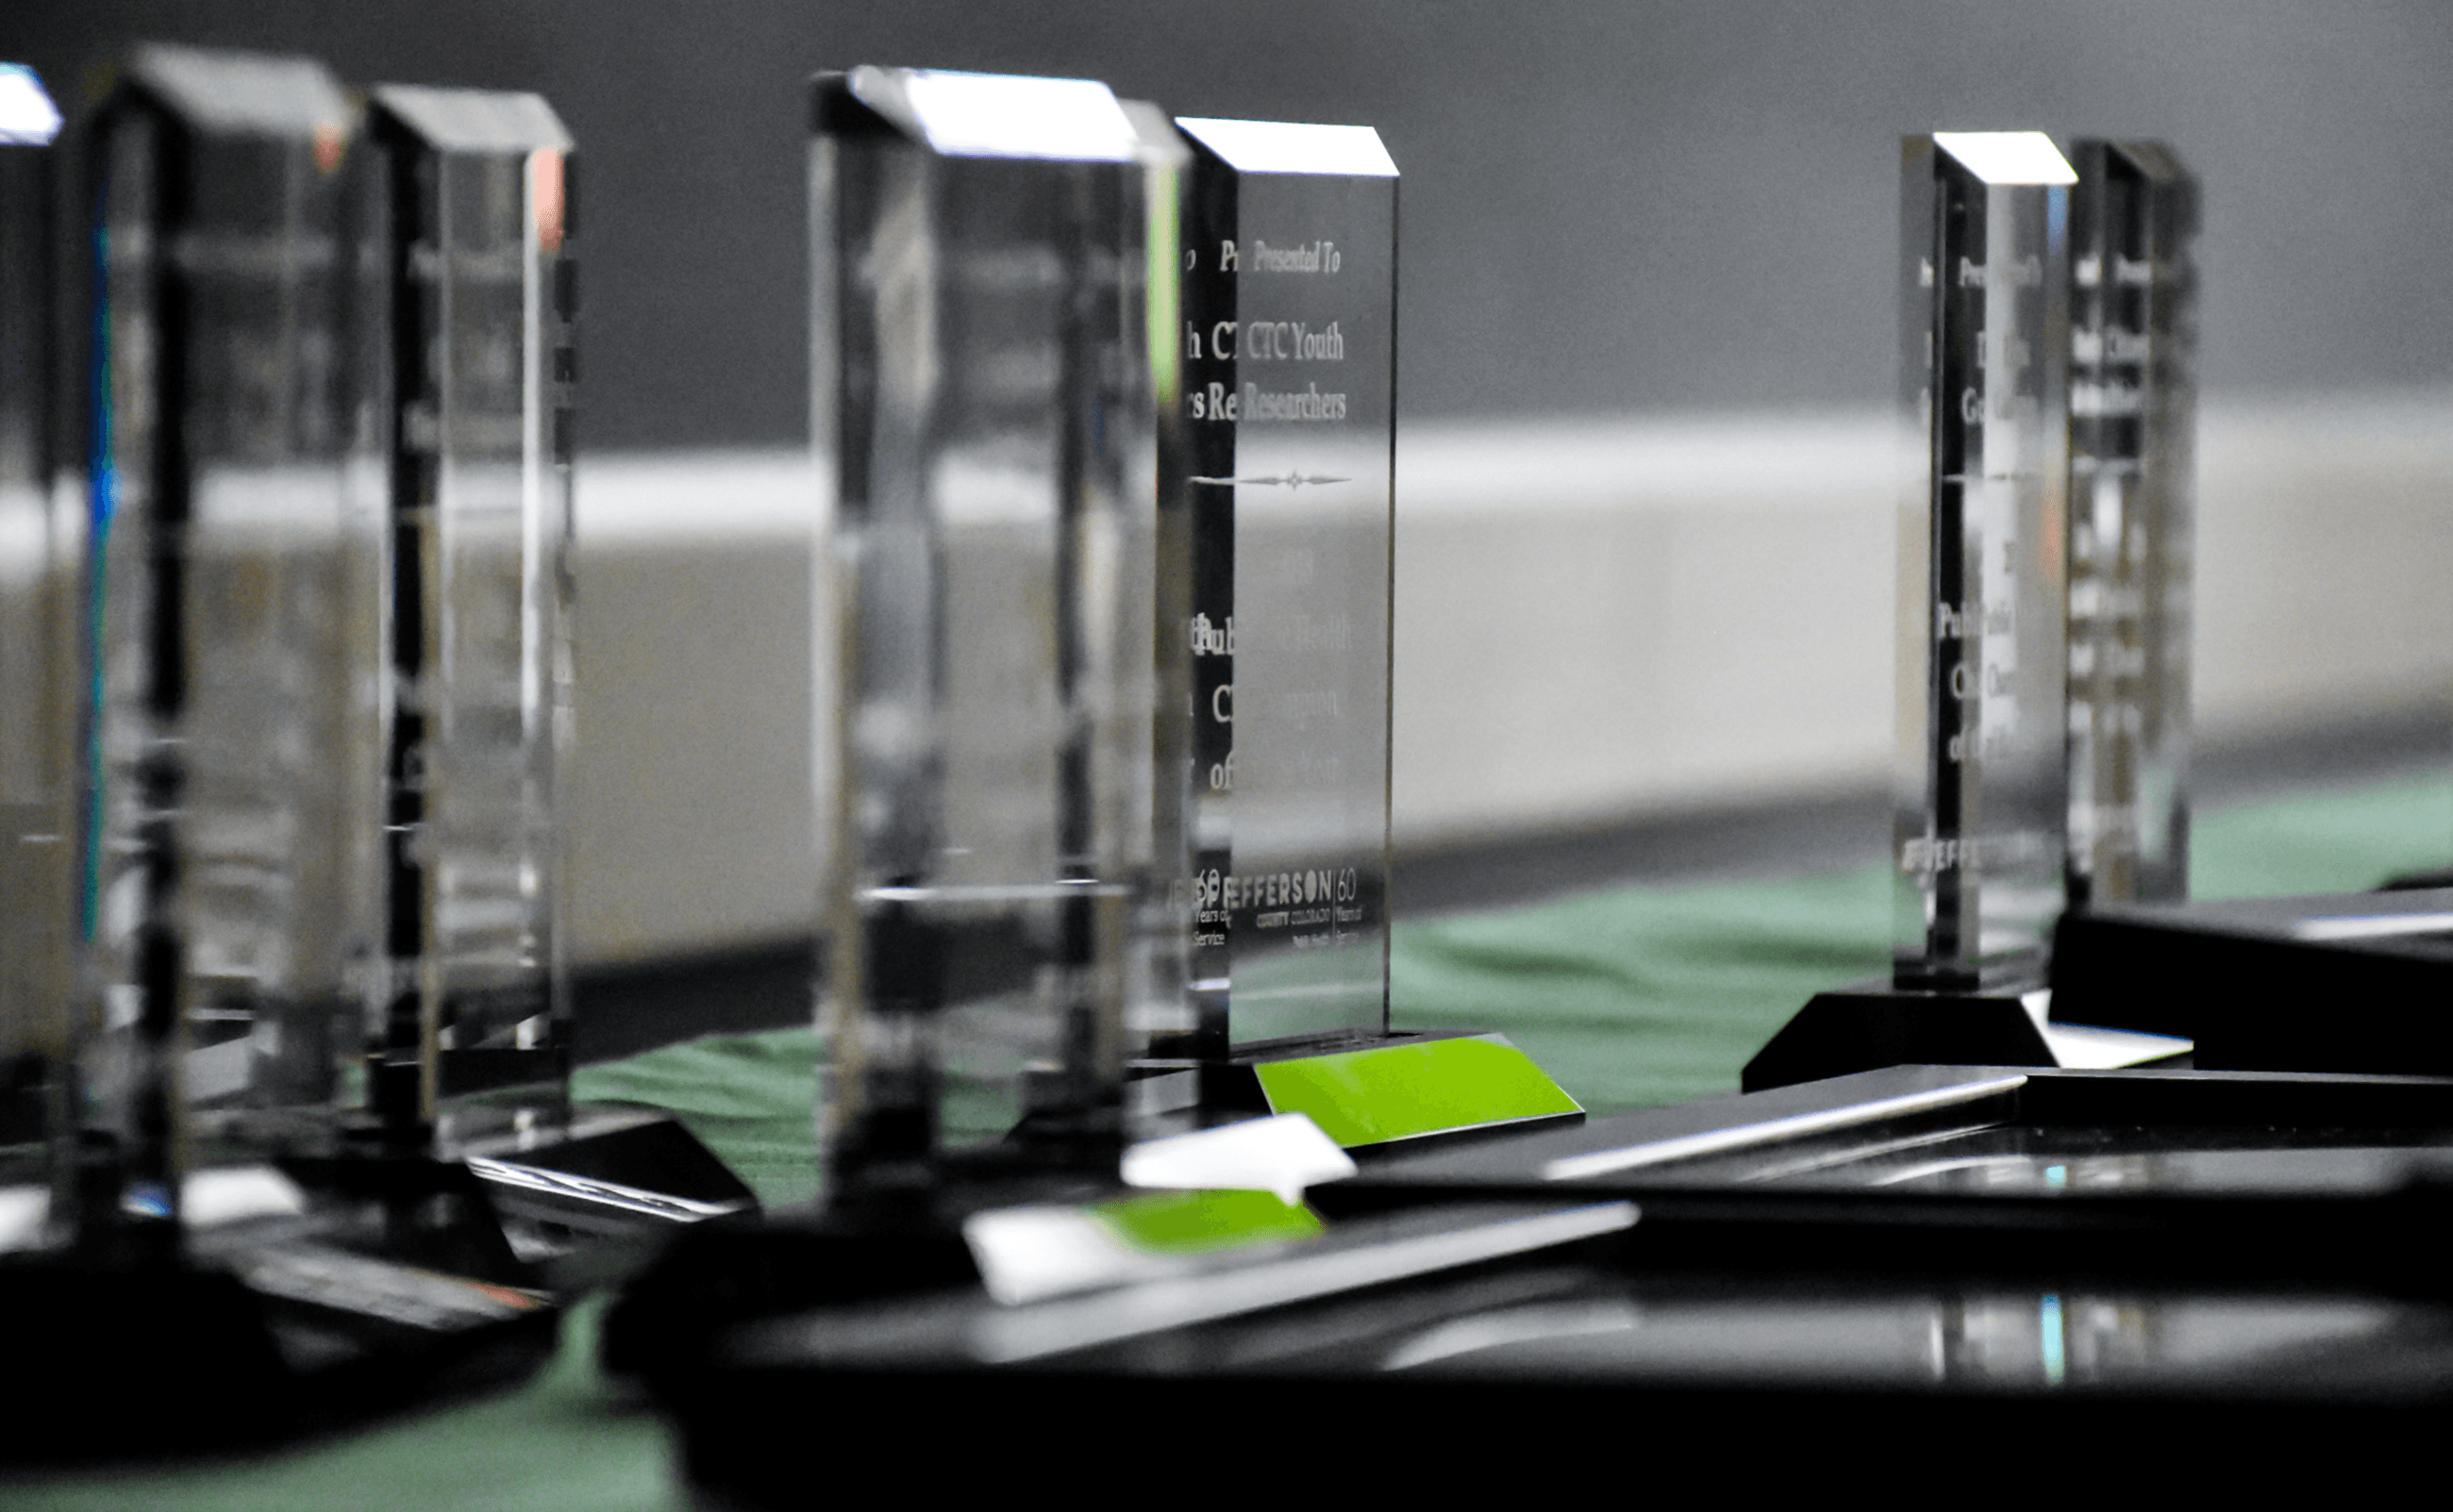 A row of awards for the 2018 Public Health Champions